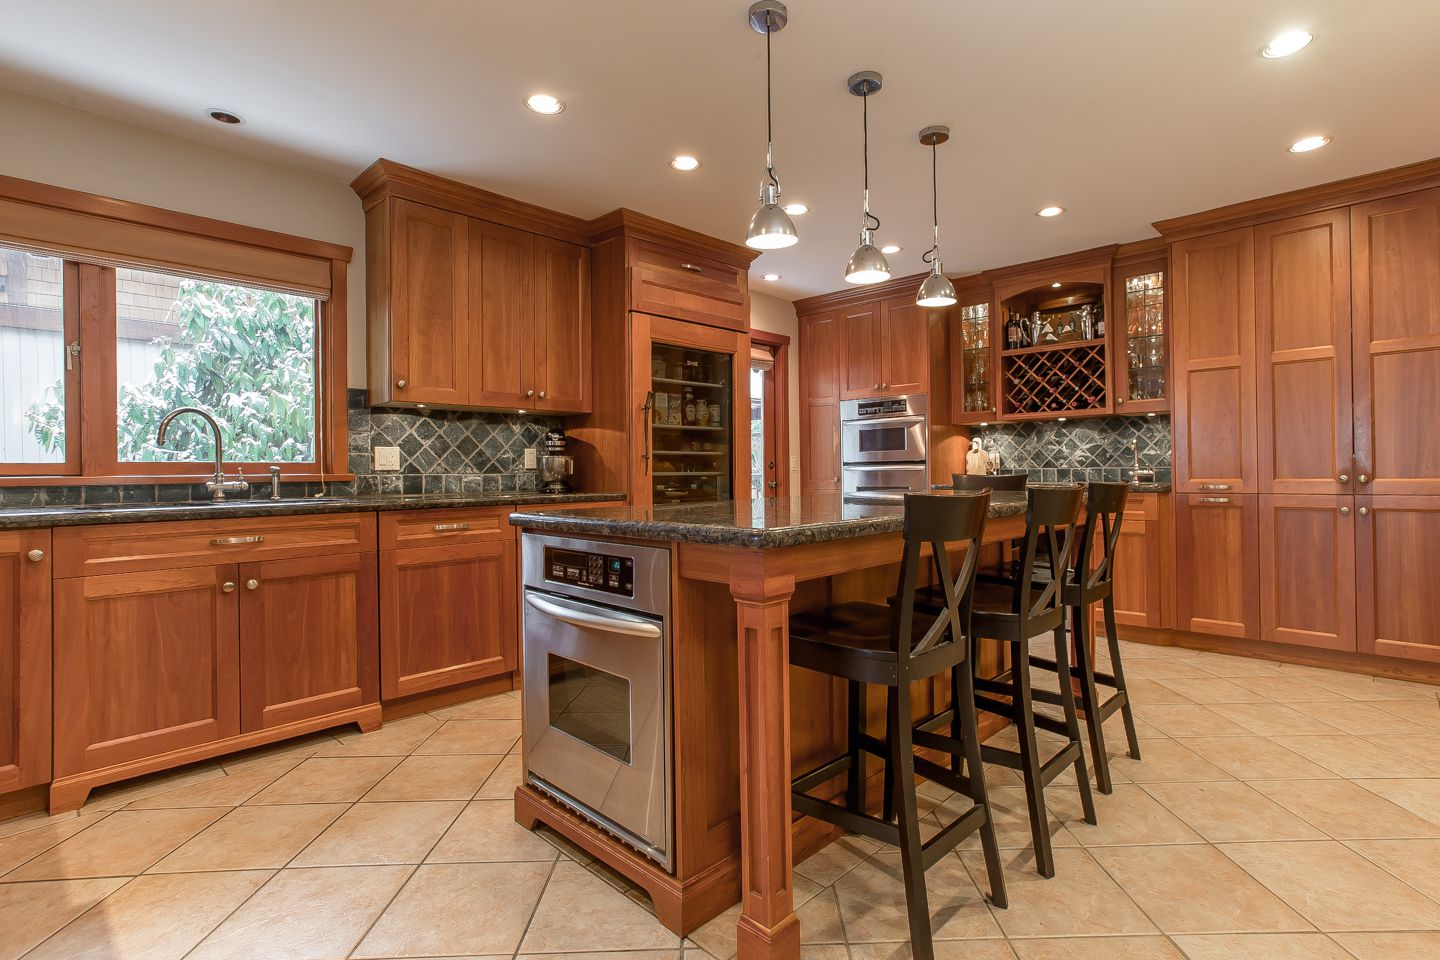 Main Photo: 4175 St Marys Avenue in : Upper Lonsdale House for sale (North Vancouver)  : MLS®# R2342876